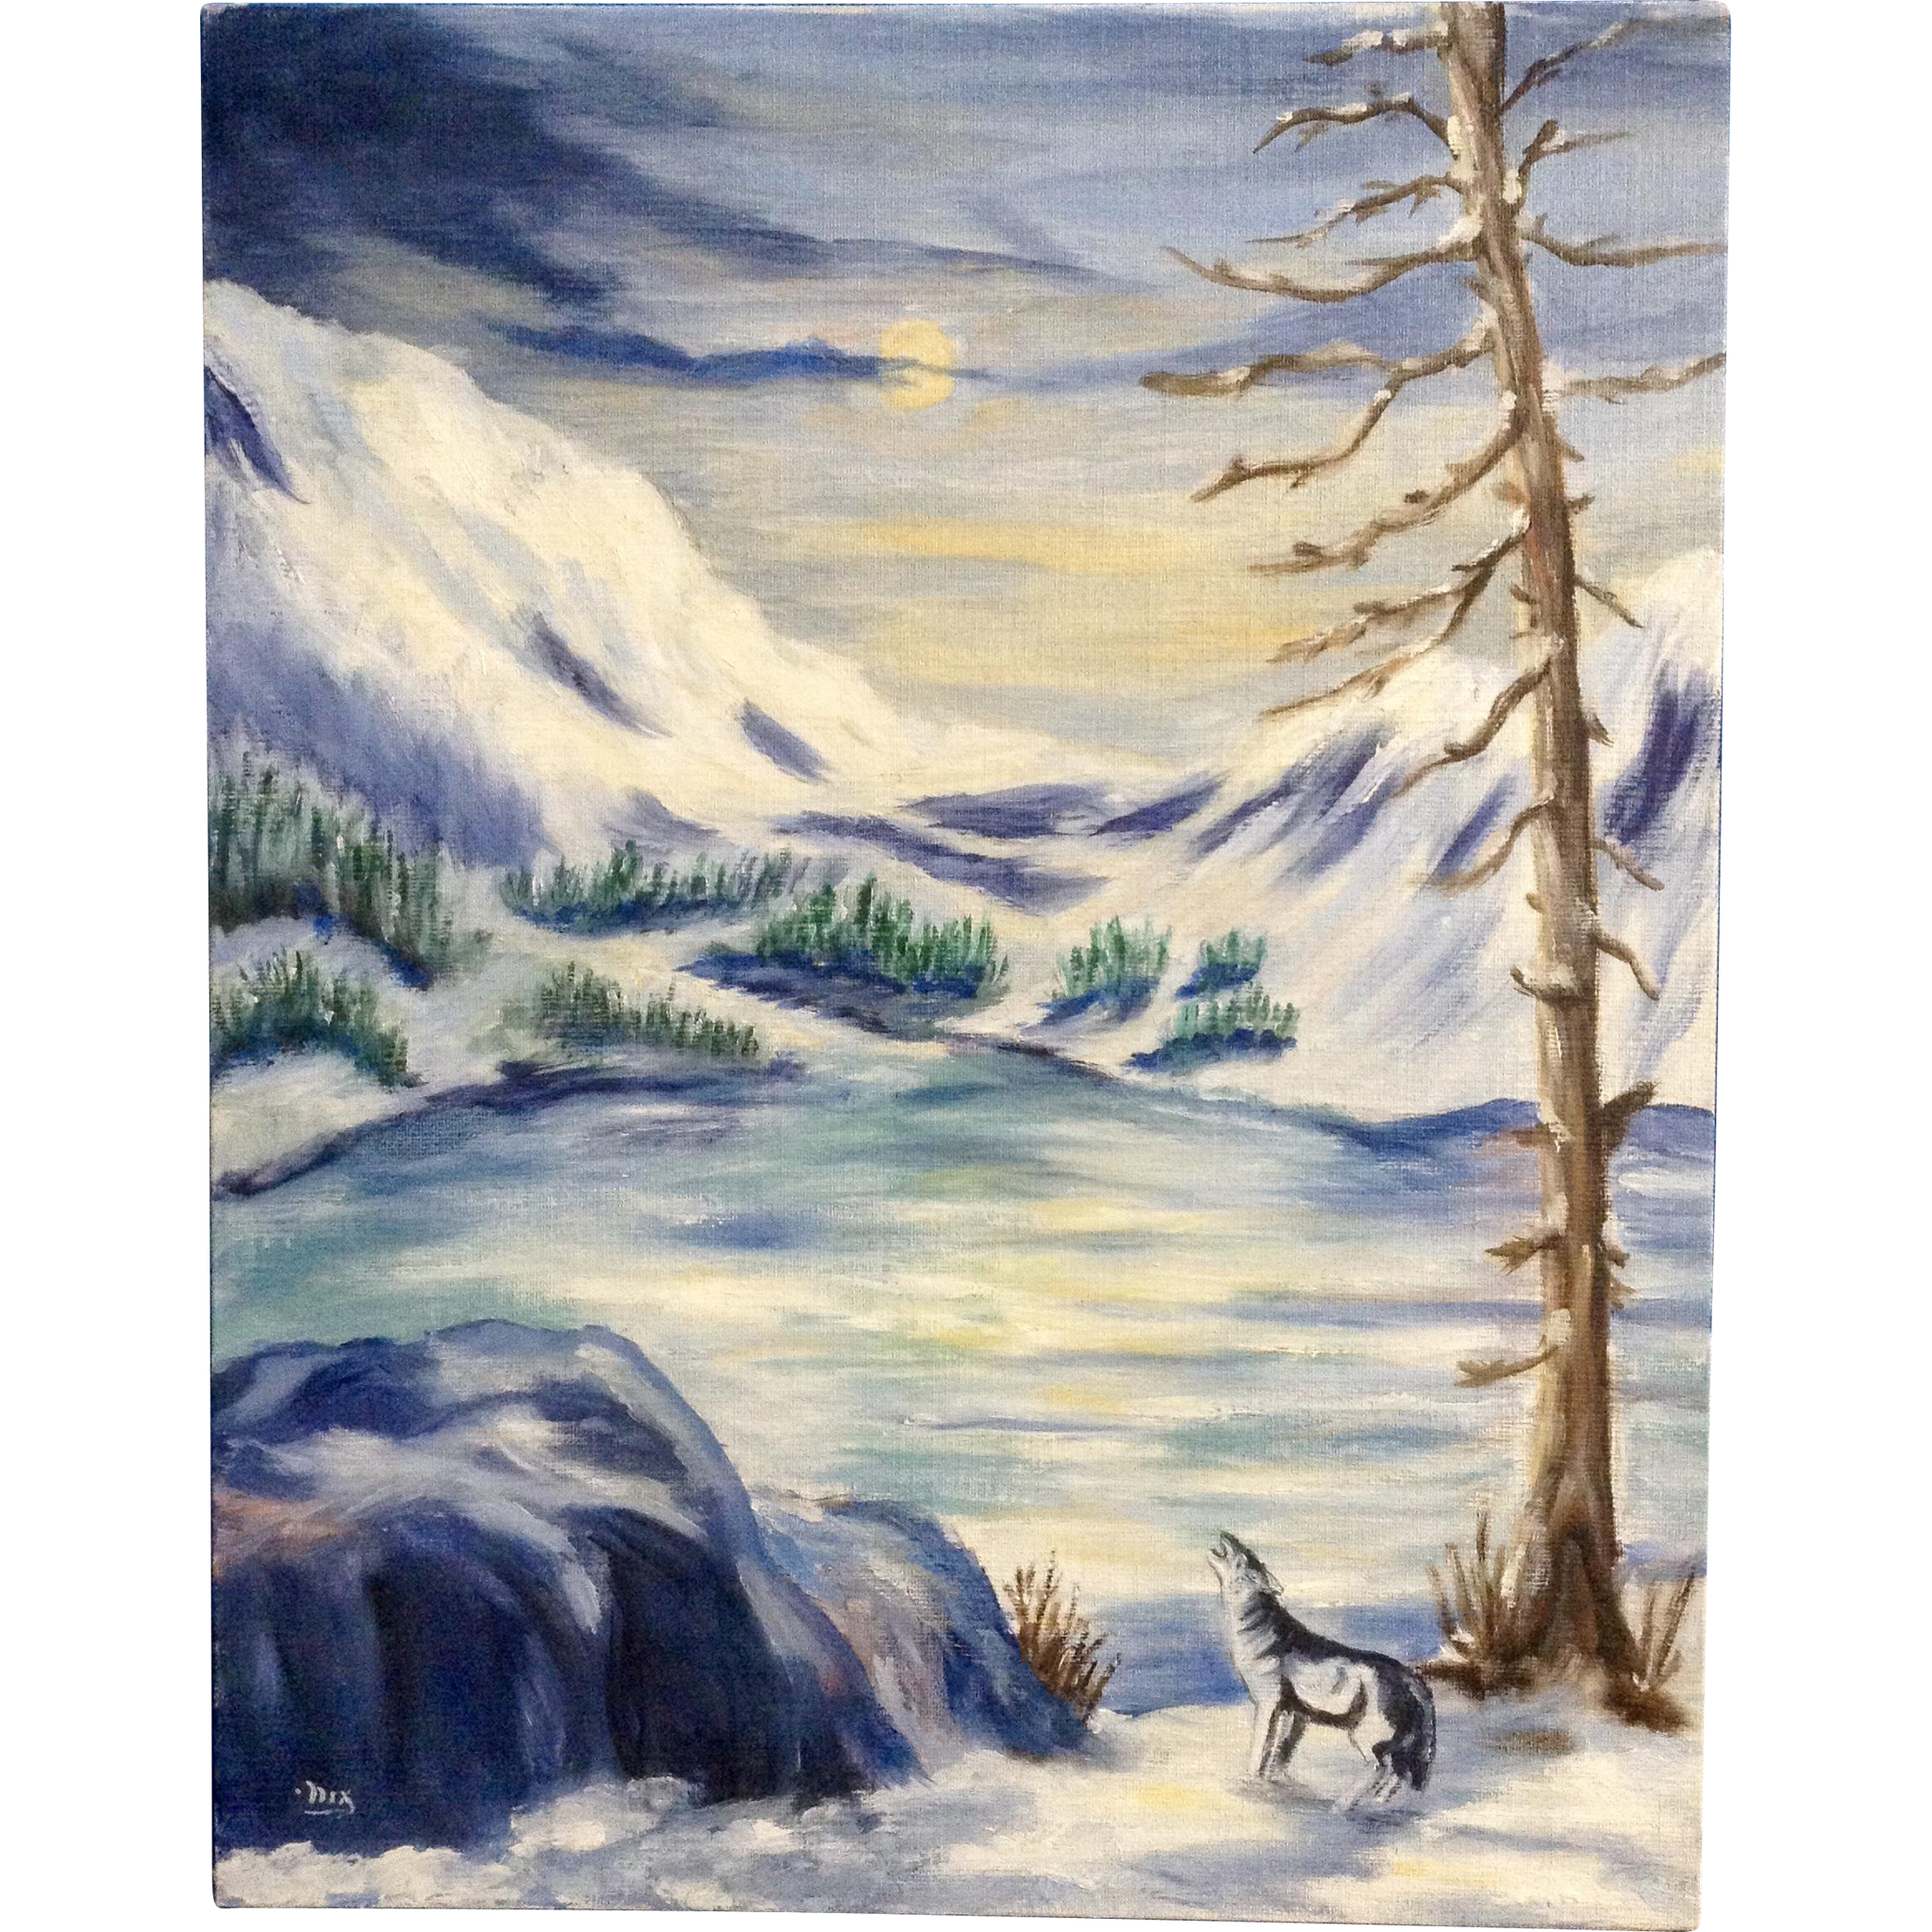 dot nix lone wolf howling at the moon painting on canvas panel